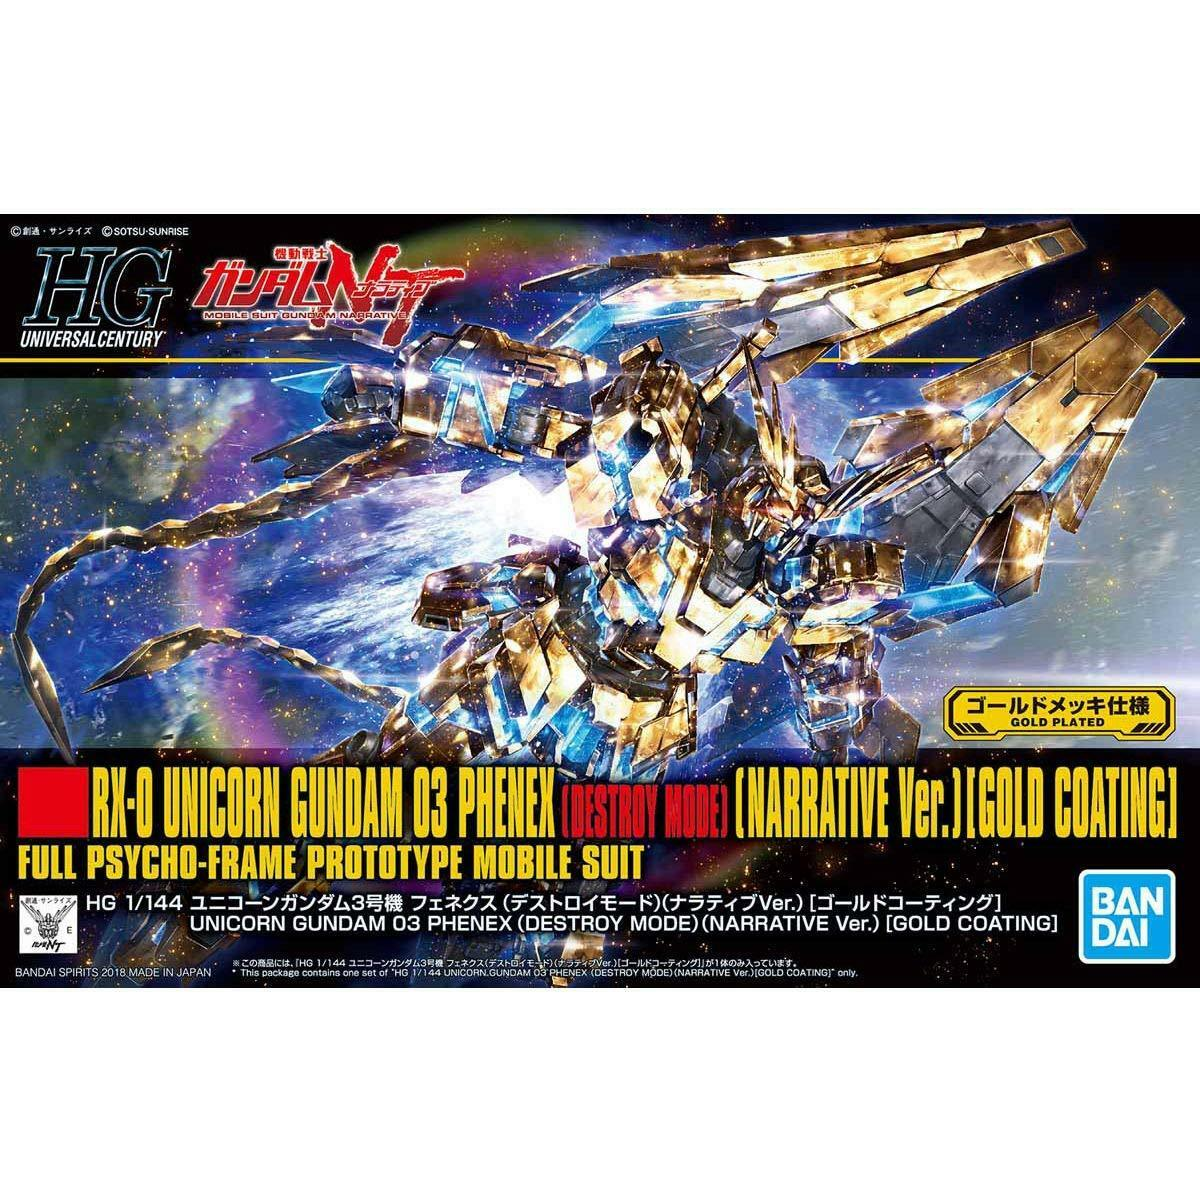 HGUC 1 144 Unicorn Gundam 03 Phenex Destroy Mode Narrative Ver. gold Plating Ver